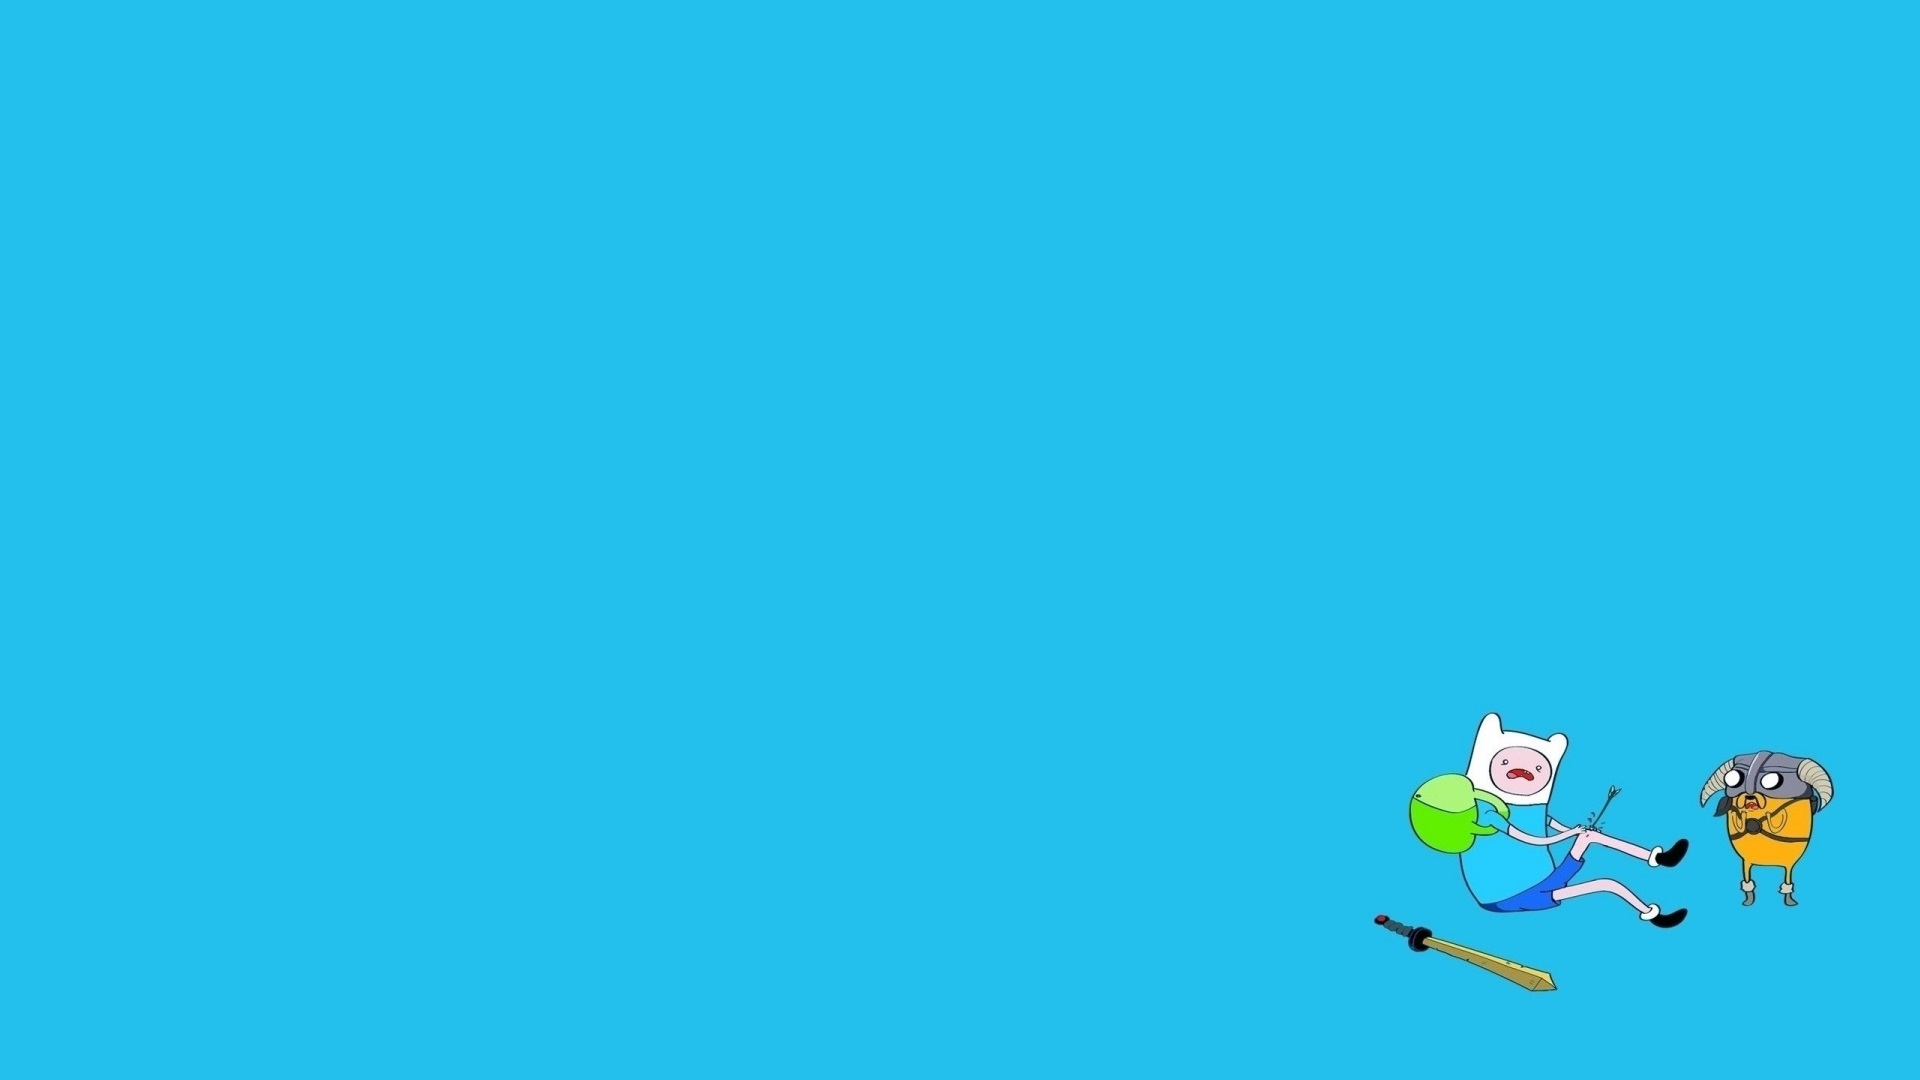 adventure time blue background - photo #17